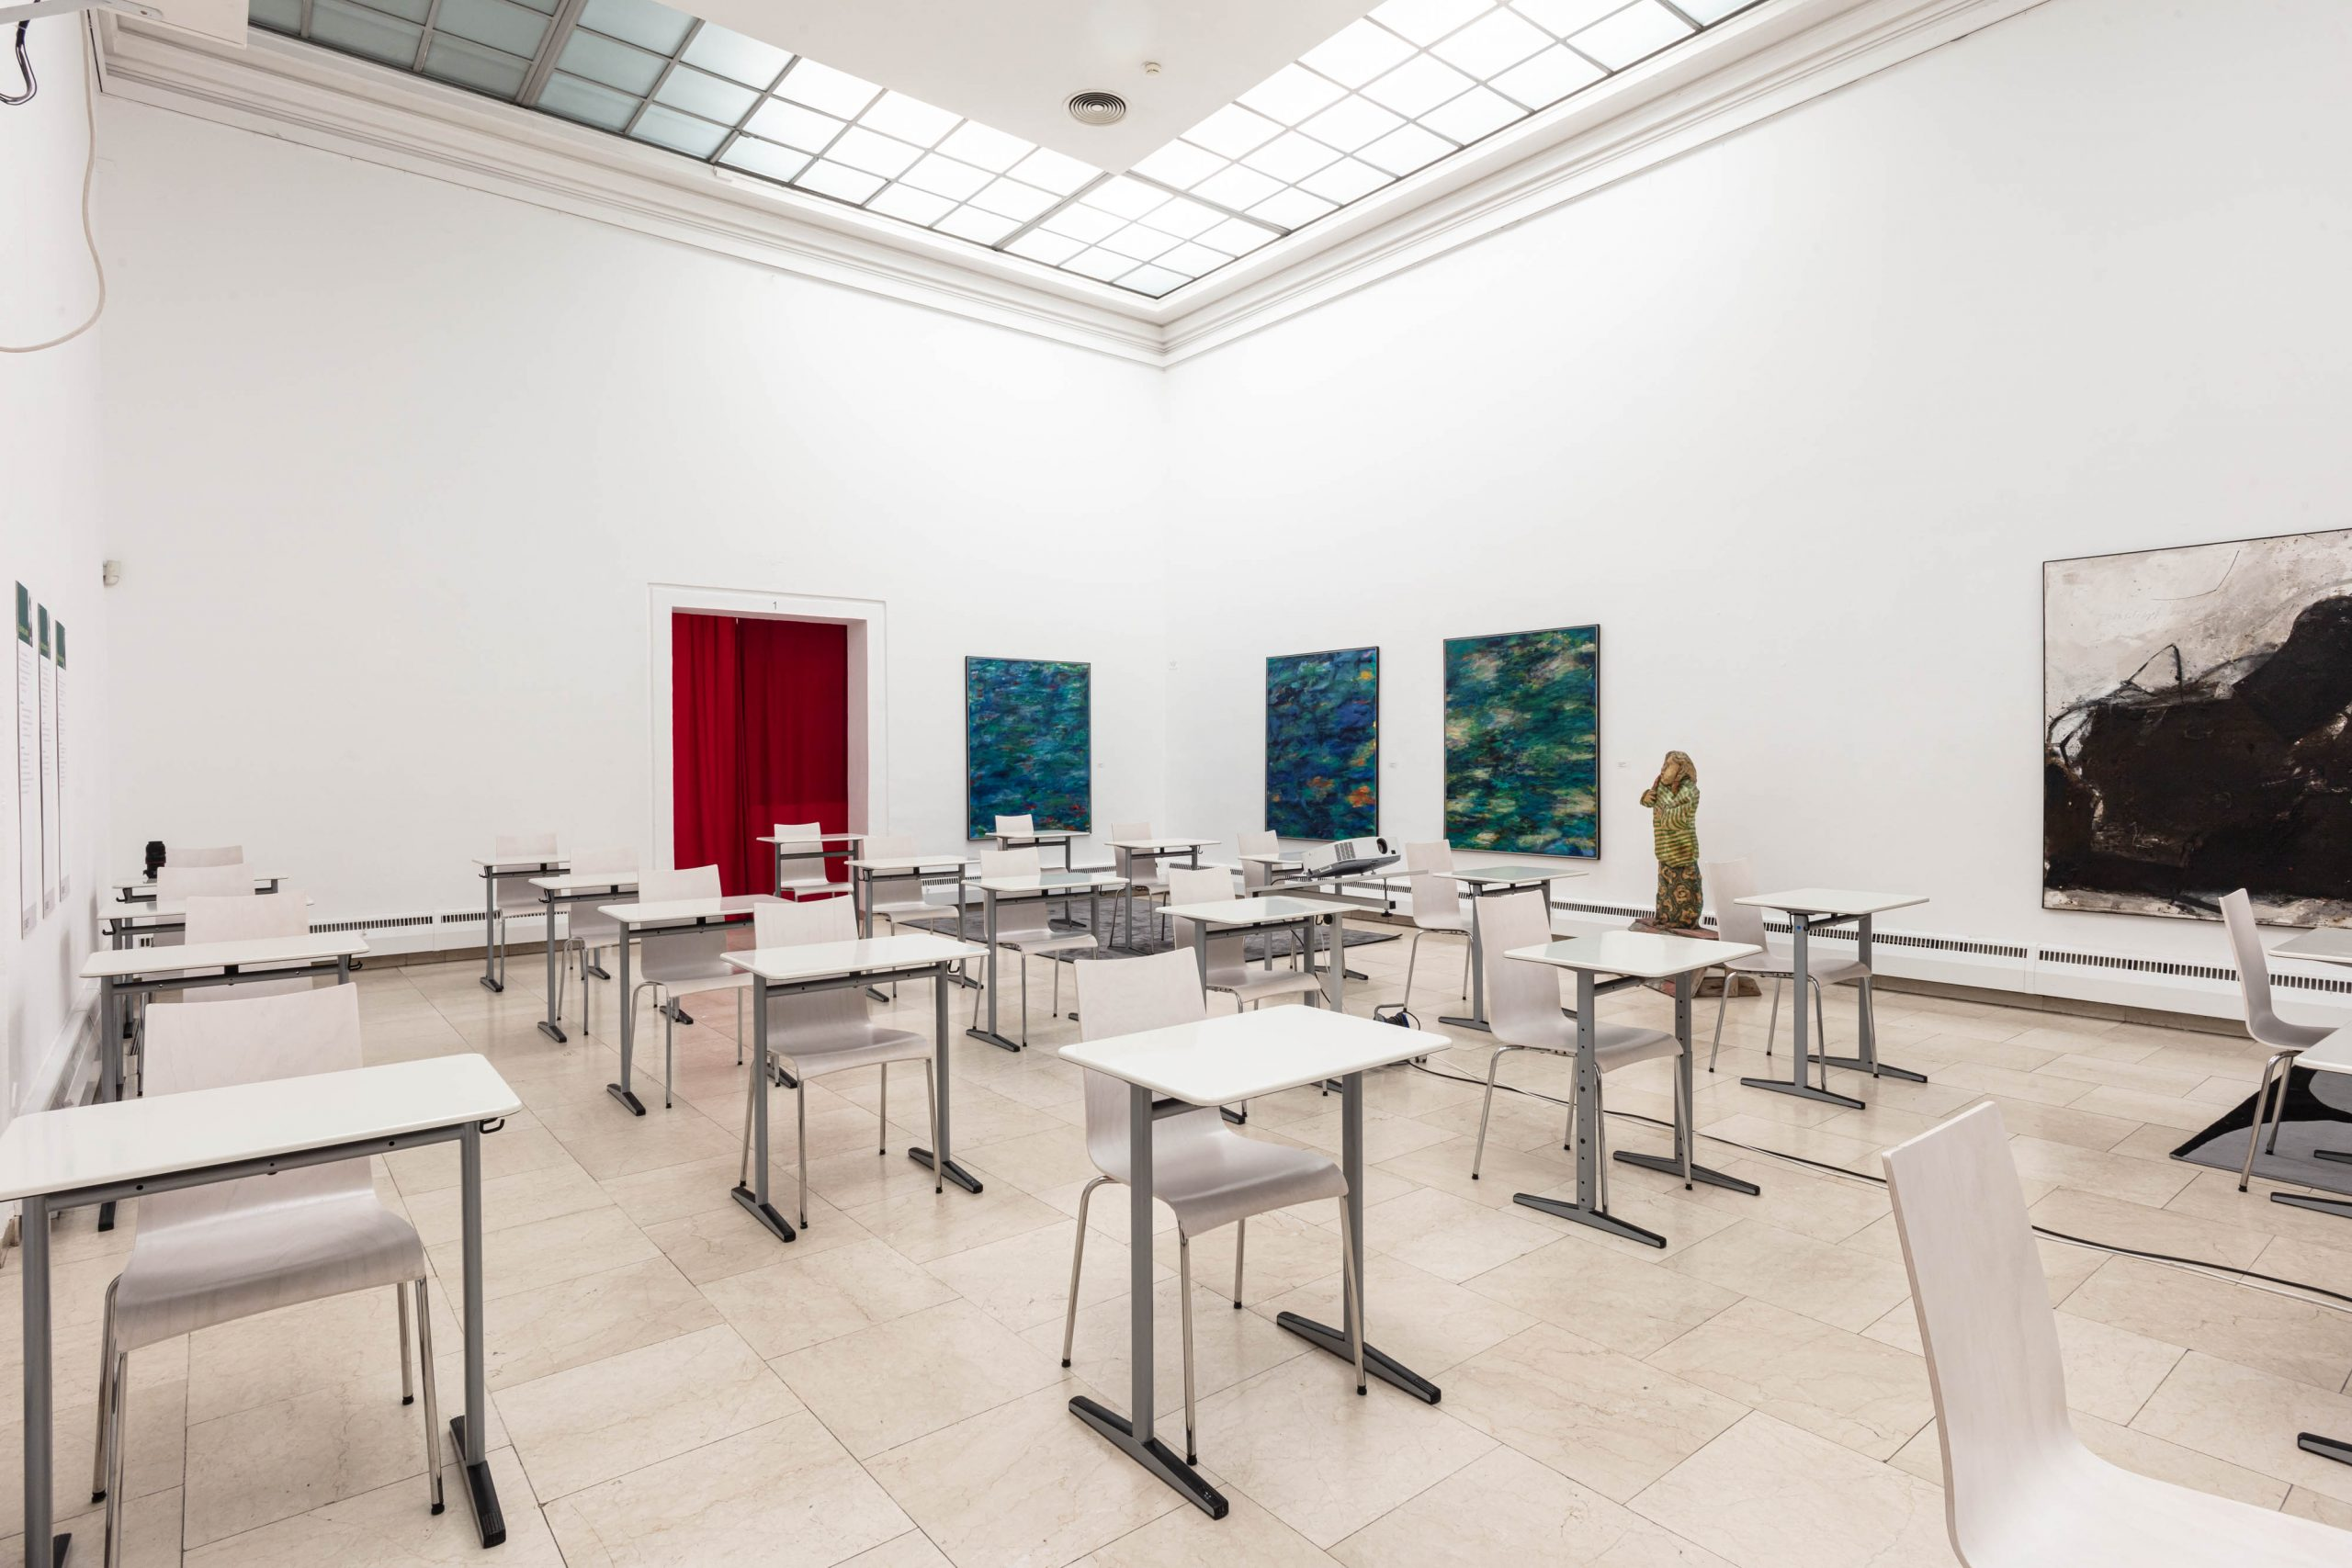 Germany's Shuttered Museums Are Offering Up Their Galleries to Cramped and Poorly-Ventilated Schools | artnet News